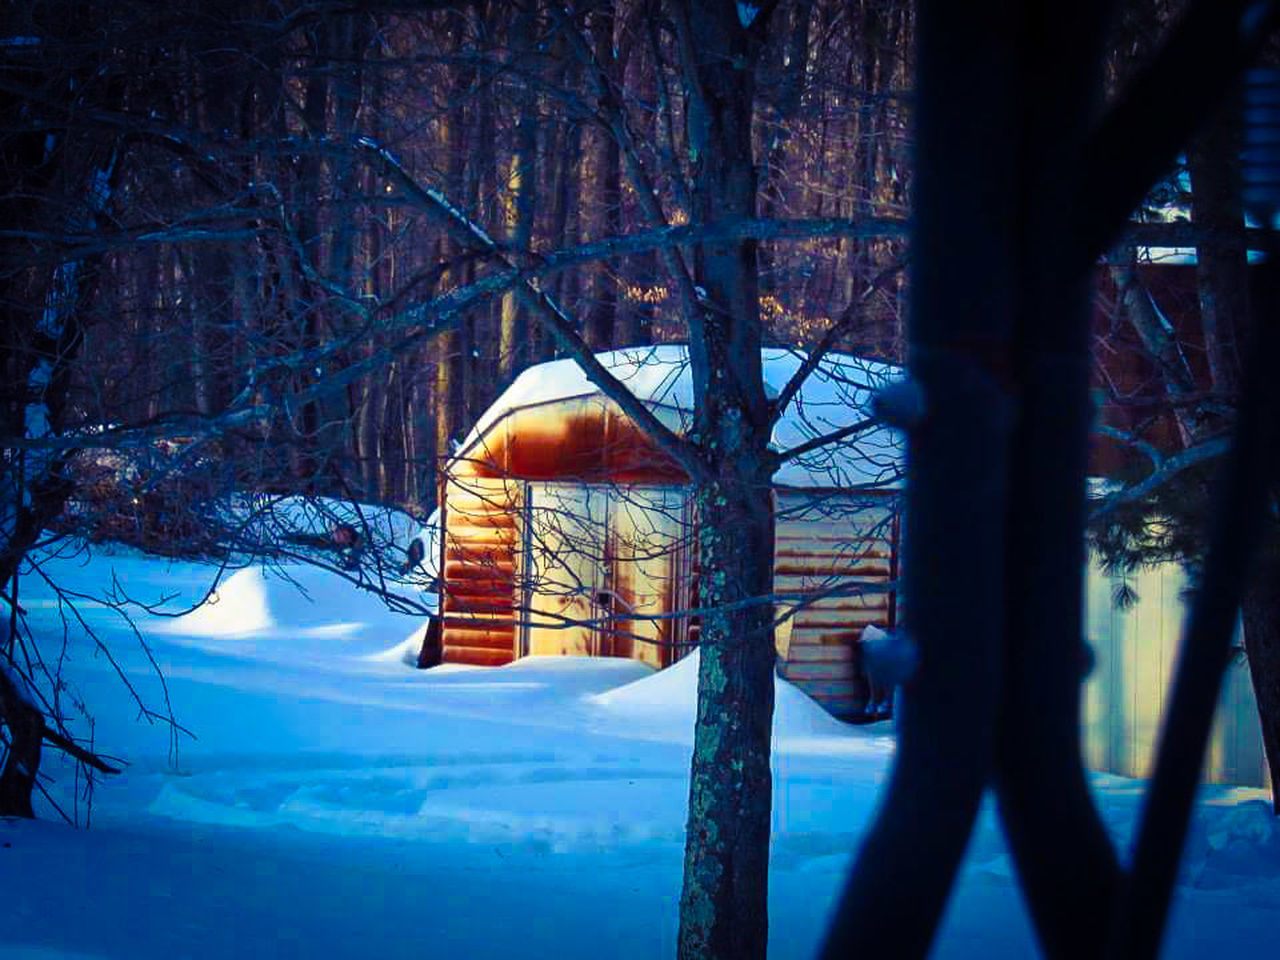 snow, winter, cold temperature, season, built structure, wood - material, covering, tree, architecture, weather, frozen, covered, nature, tranquility, bare tree, no people, railing, white color, day, outdoors